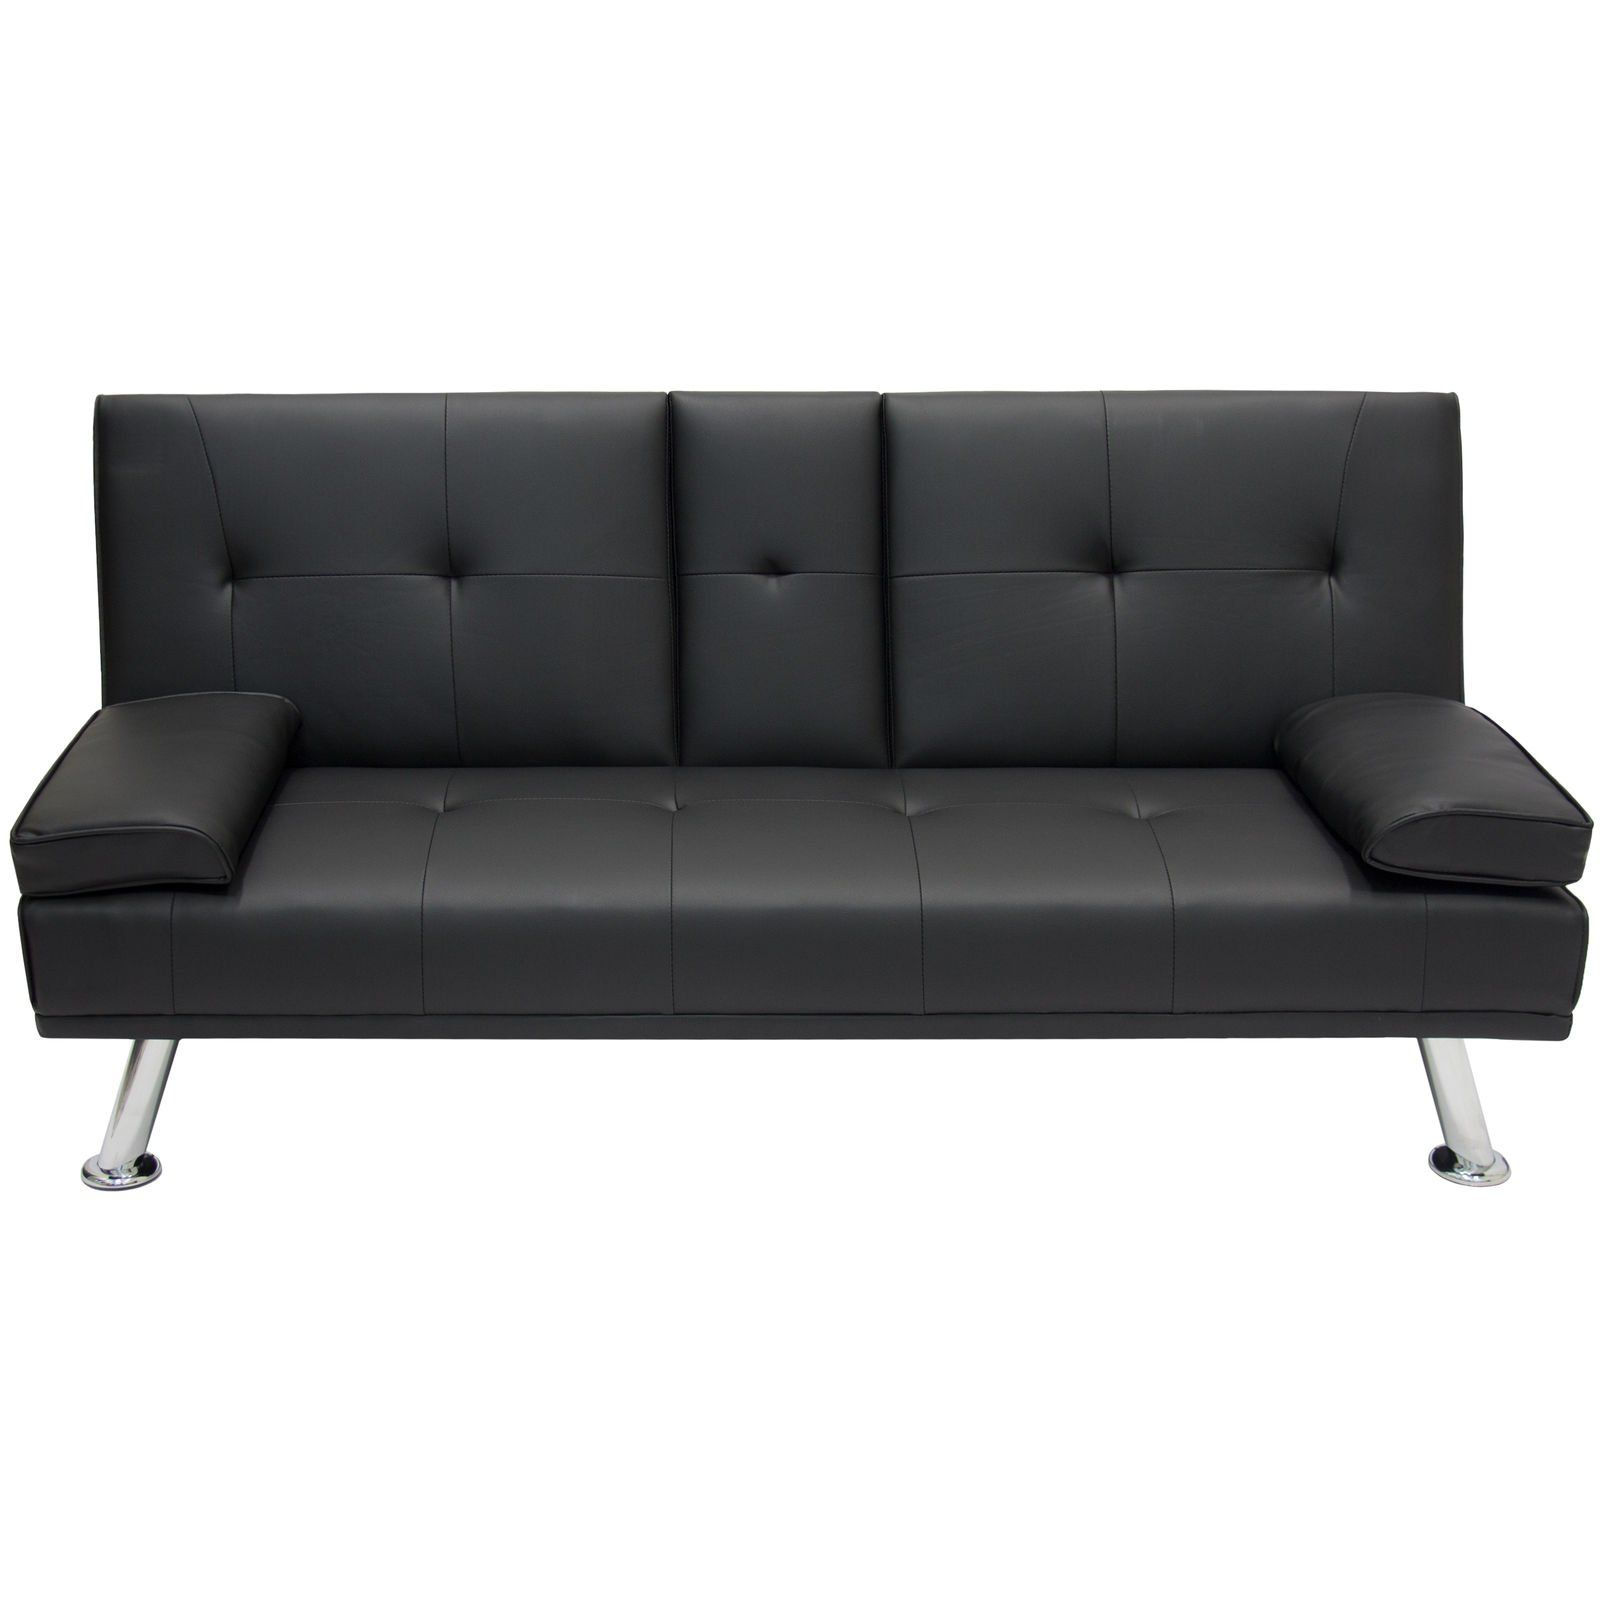 Entertainment Furniture Futon Sofa Bed Fold Up Down Recliner Couch Cup Holders Click